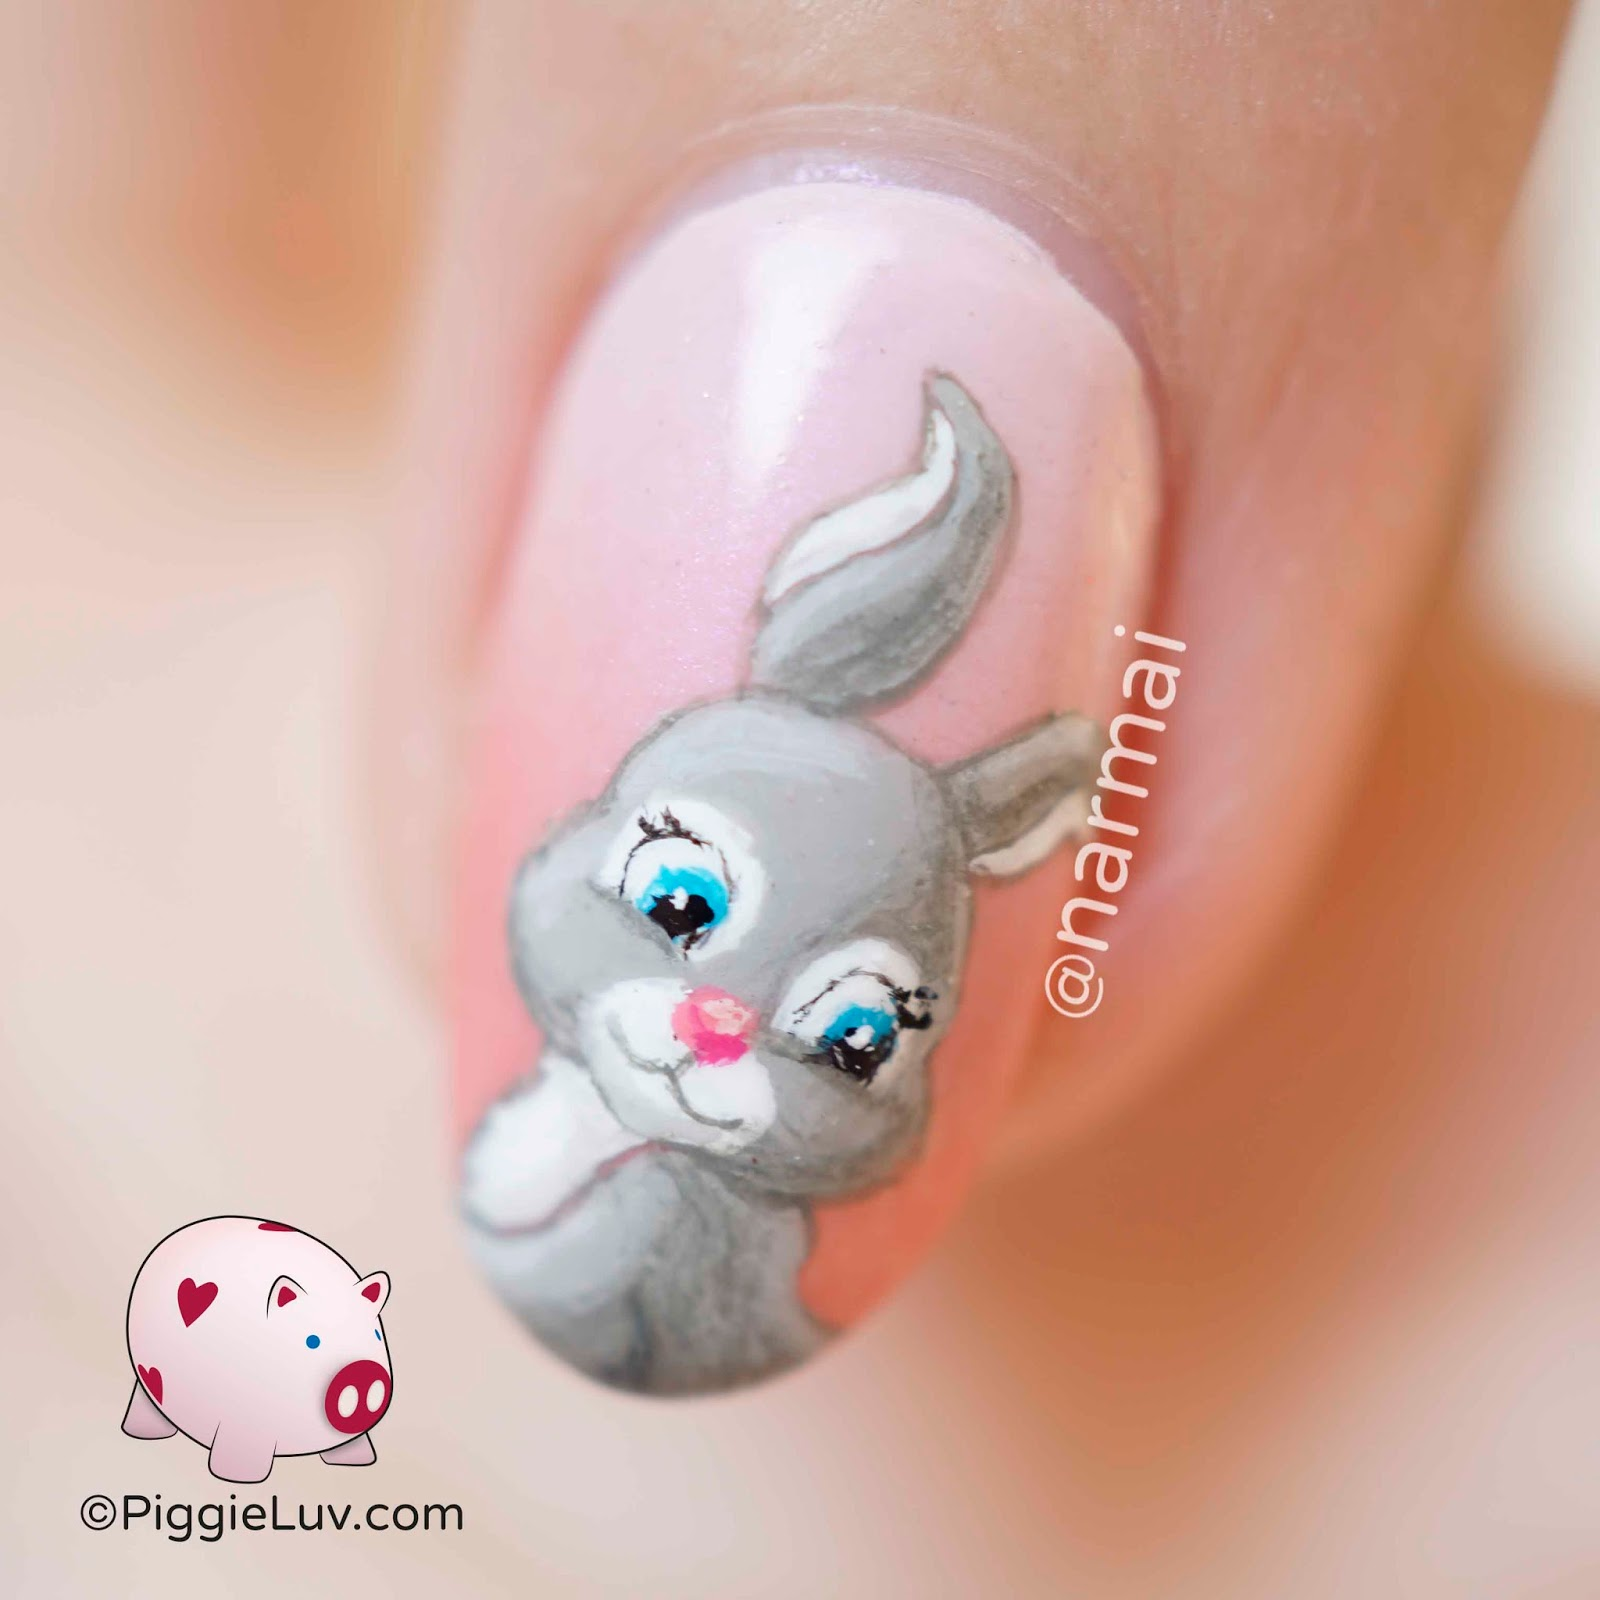 Piggieluv Some Bunny Loves You Nail Art For Valentines Day